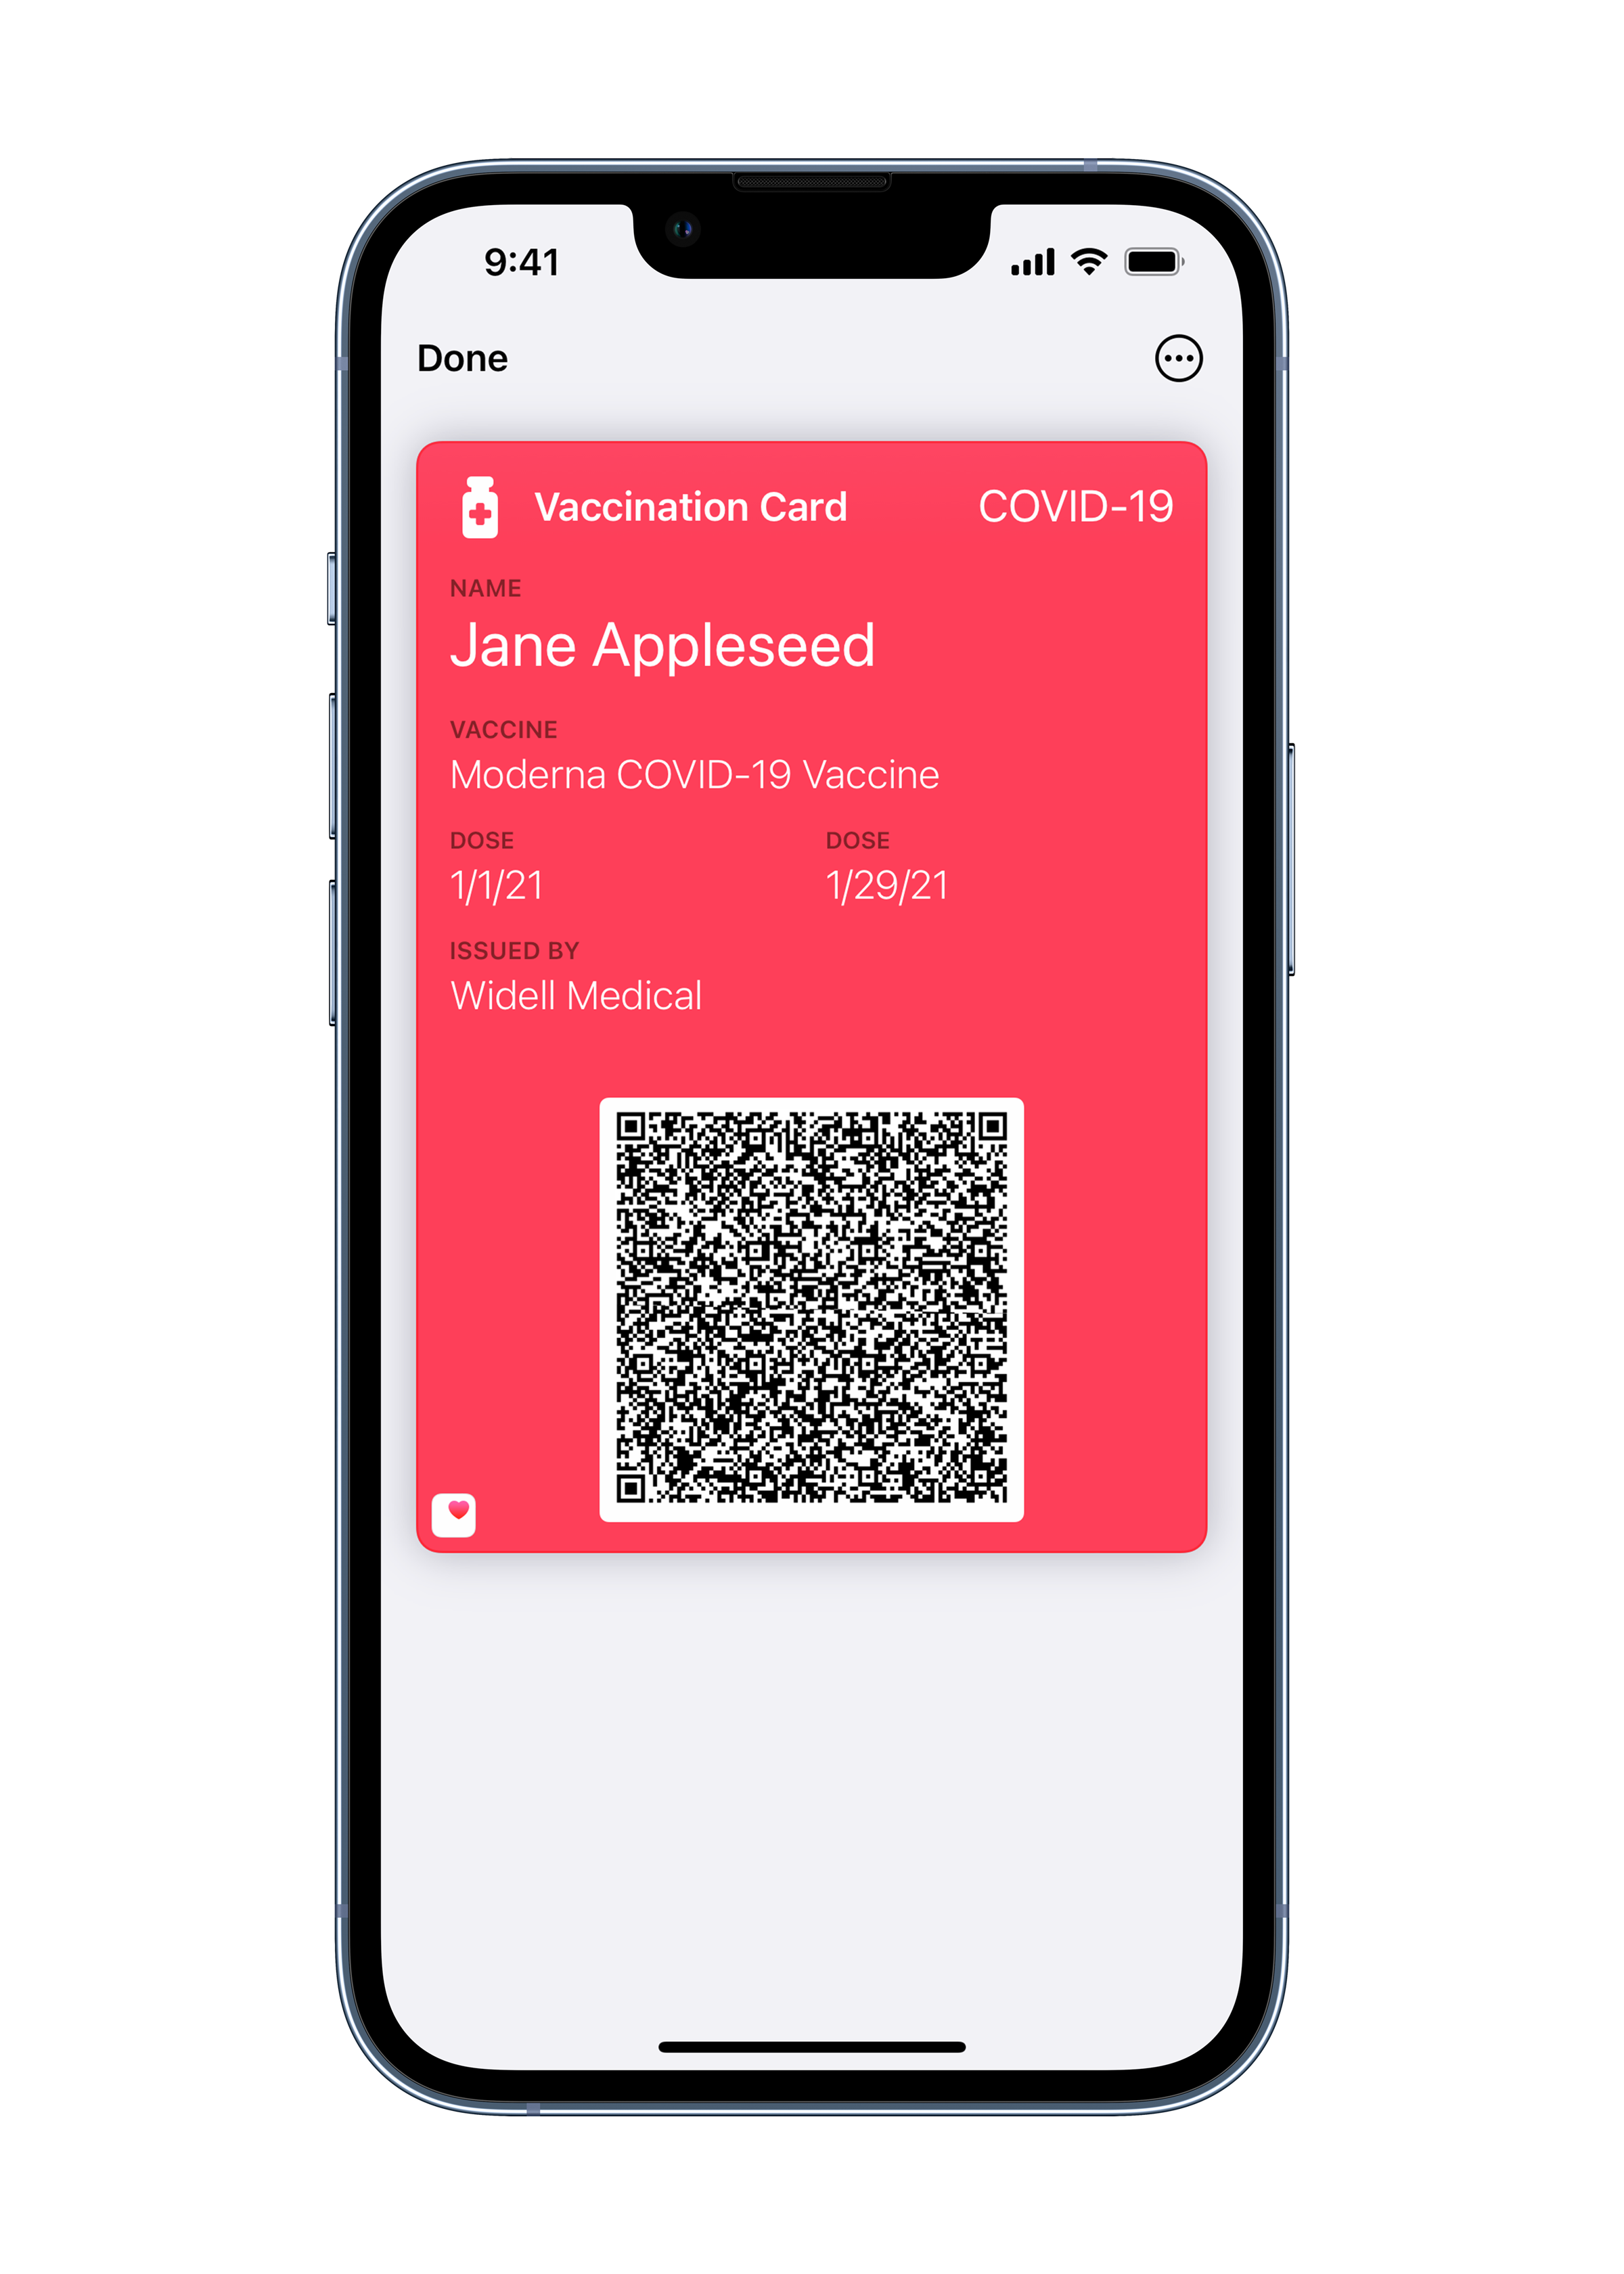 Apple will soon let you put your vaccination card in Wallet. Here's what it'll look like